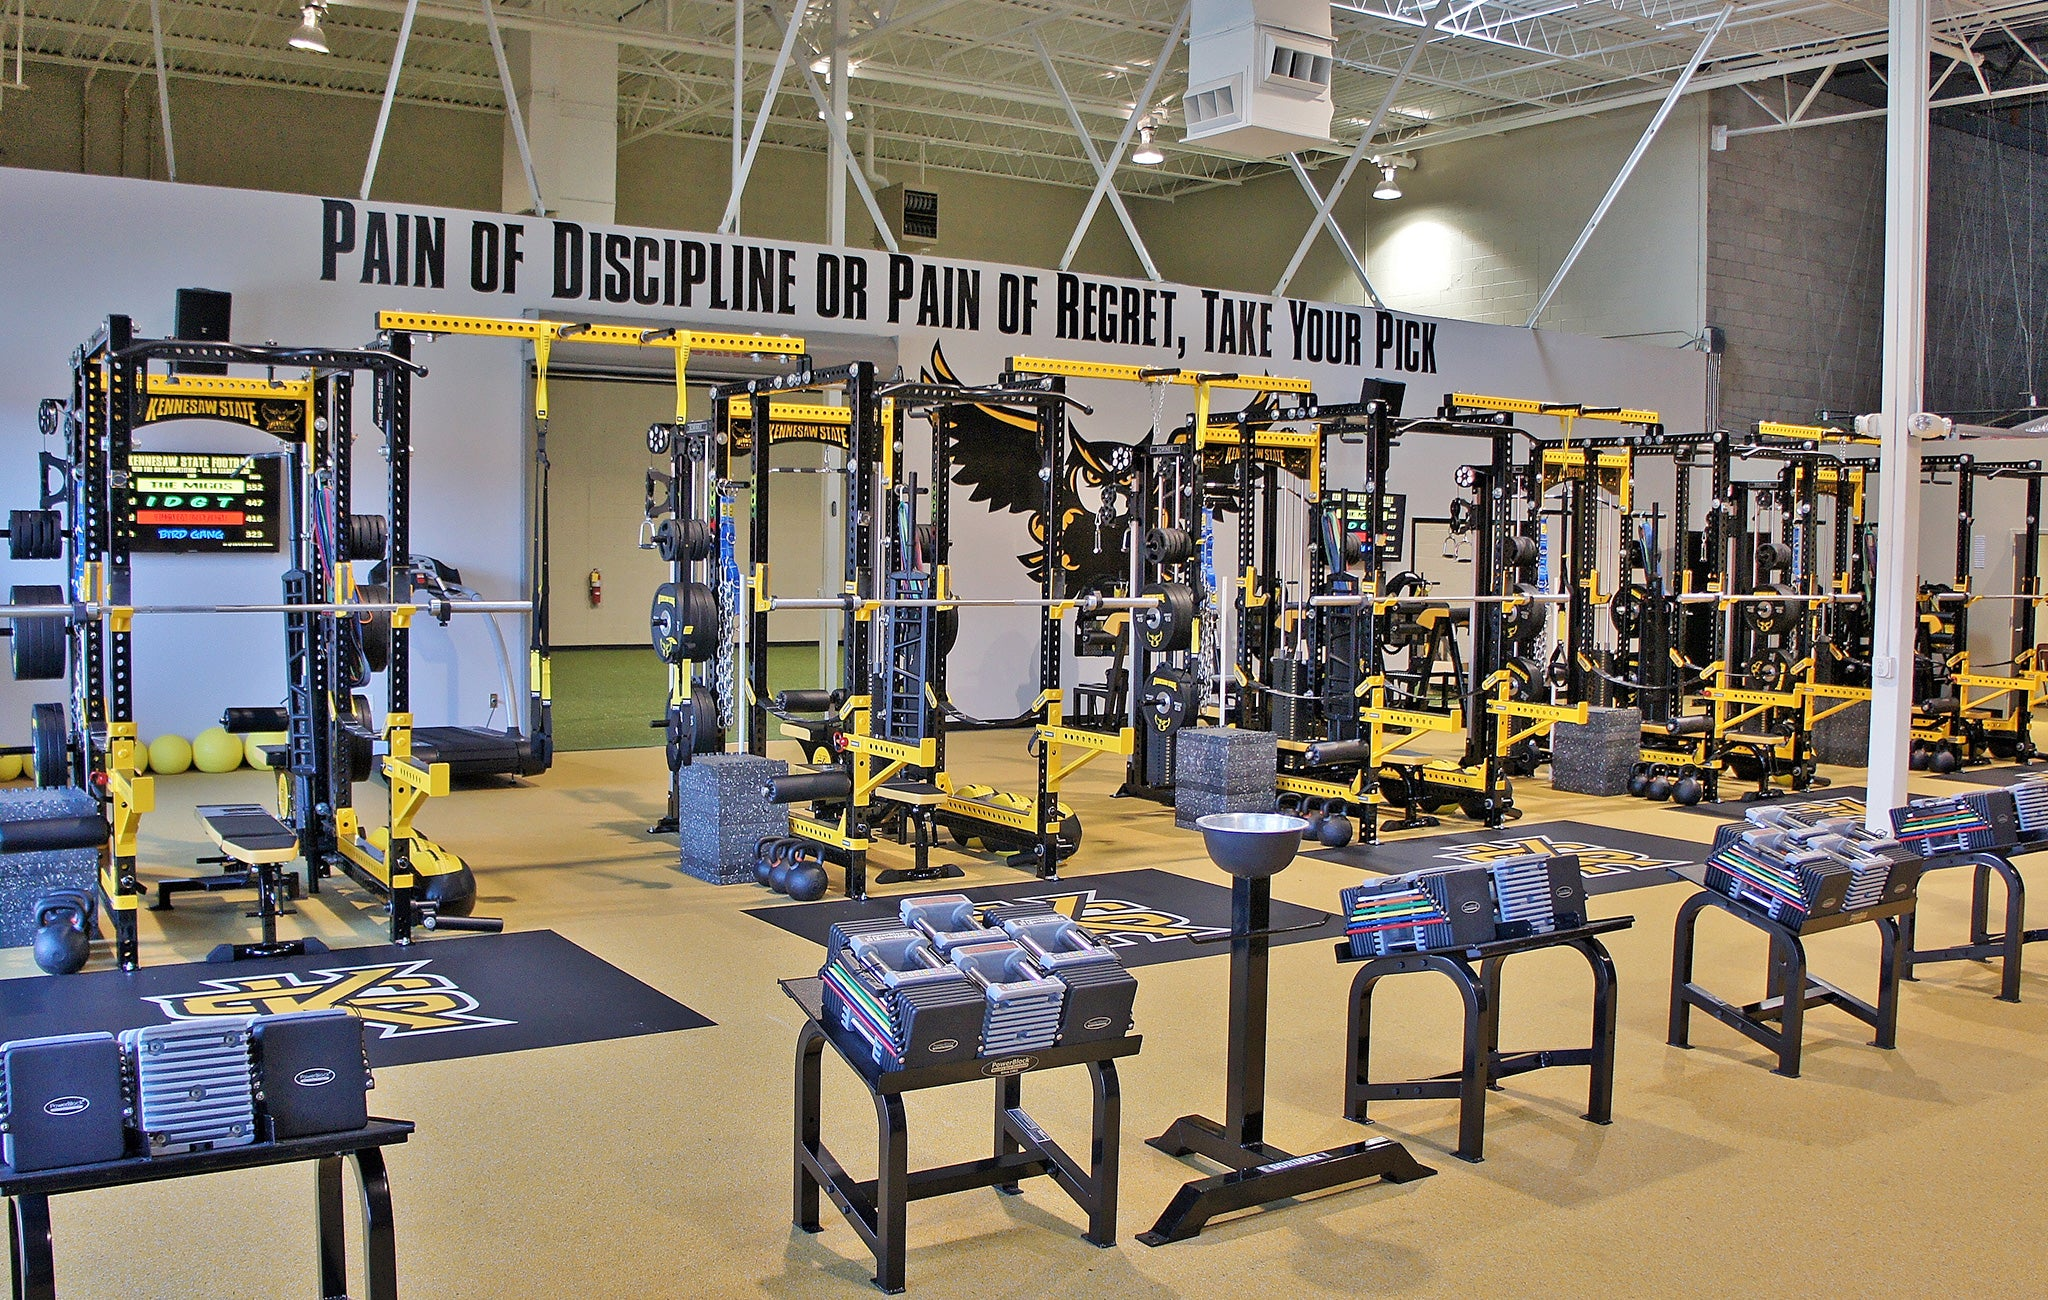 Kennesaw State University Weight Room